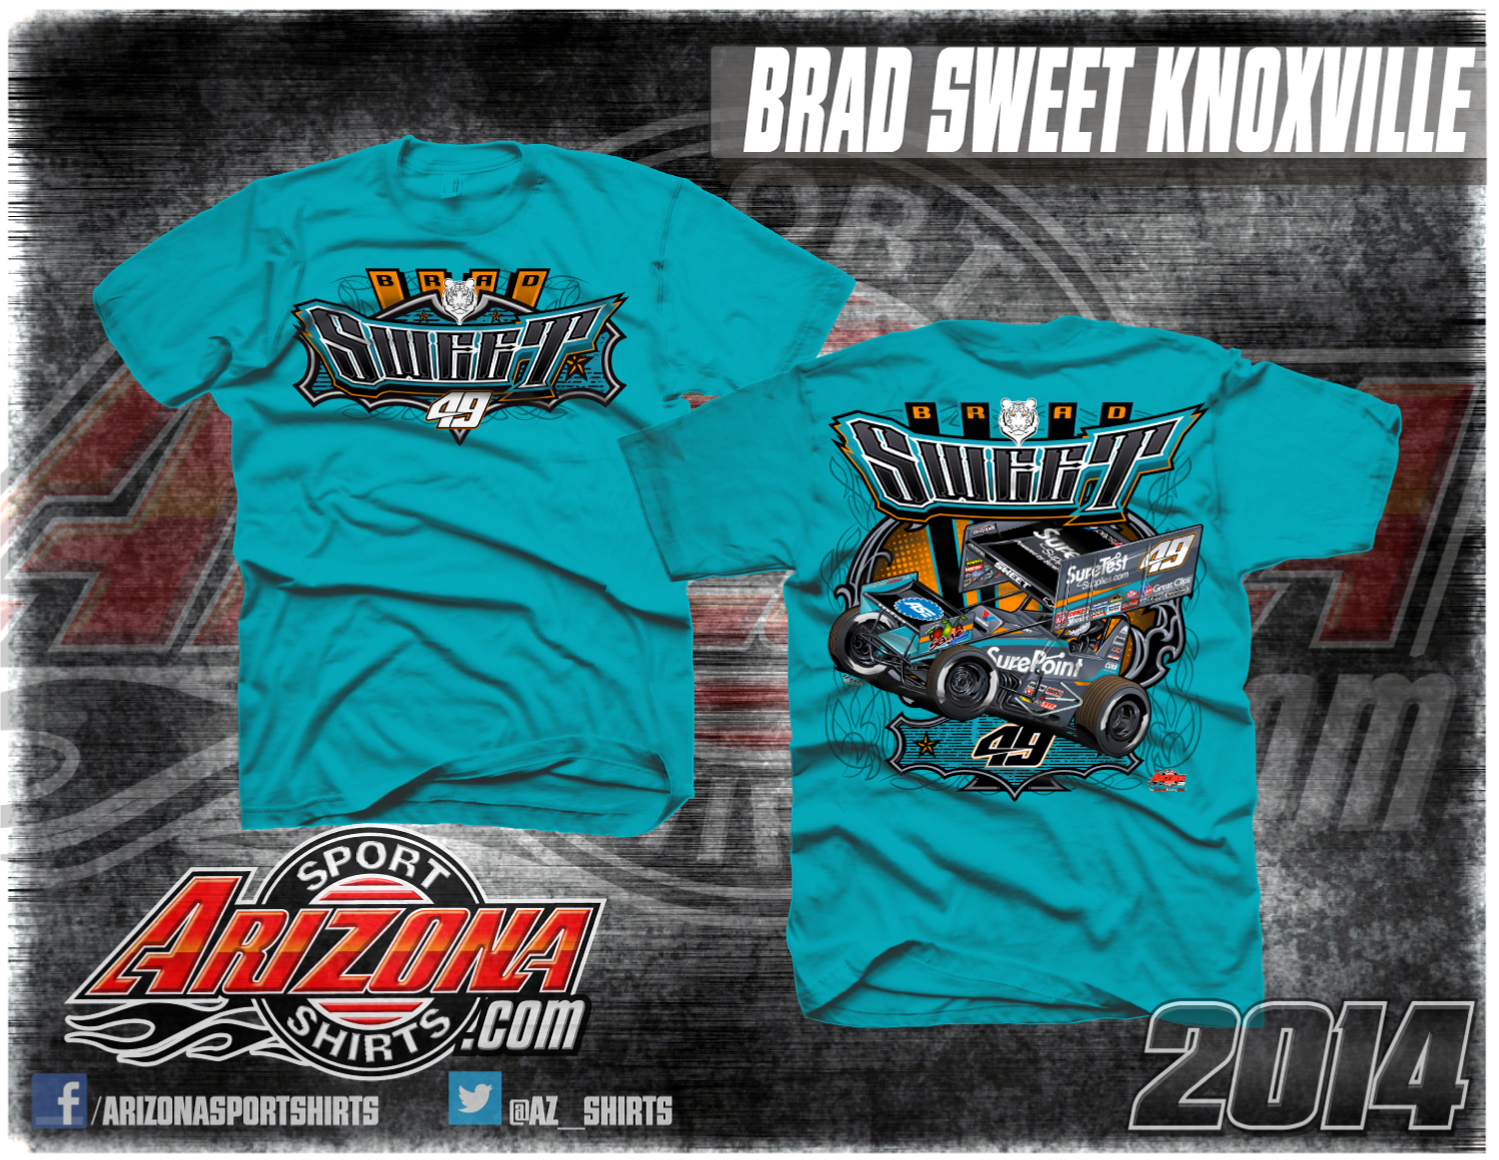 brad-sweet-knoxville